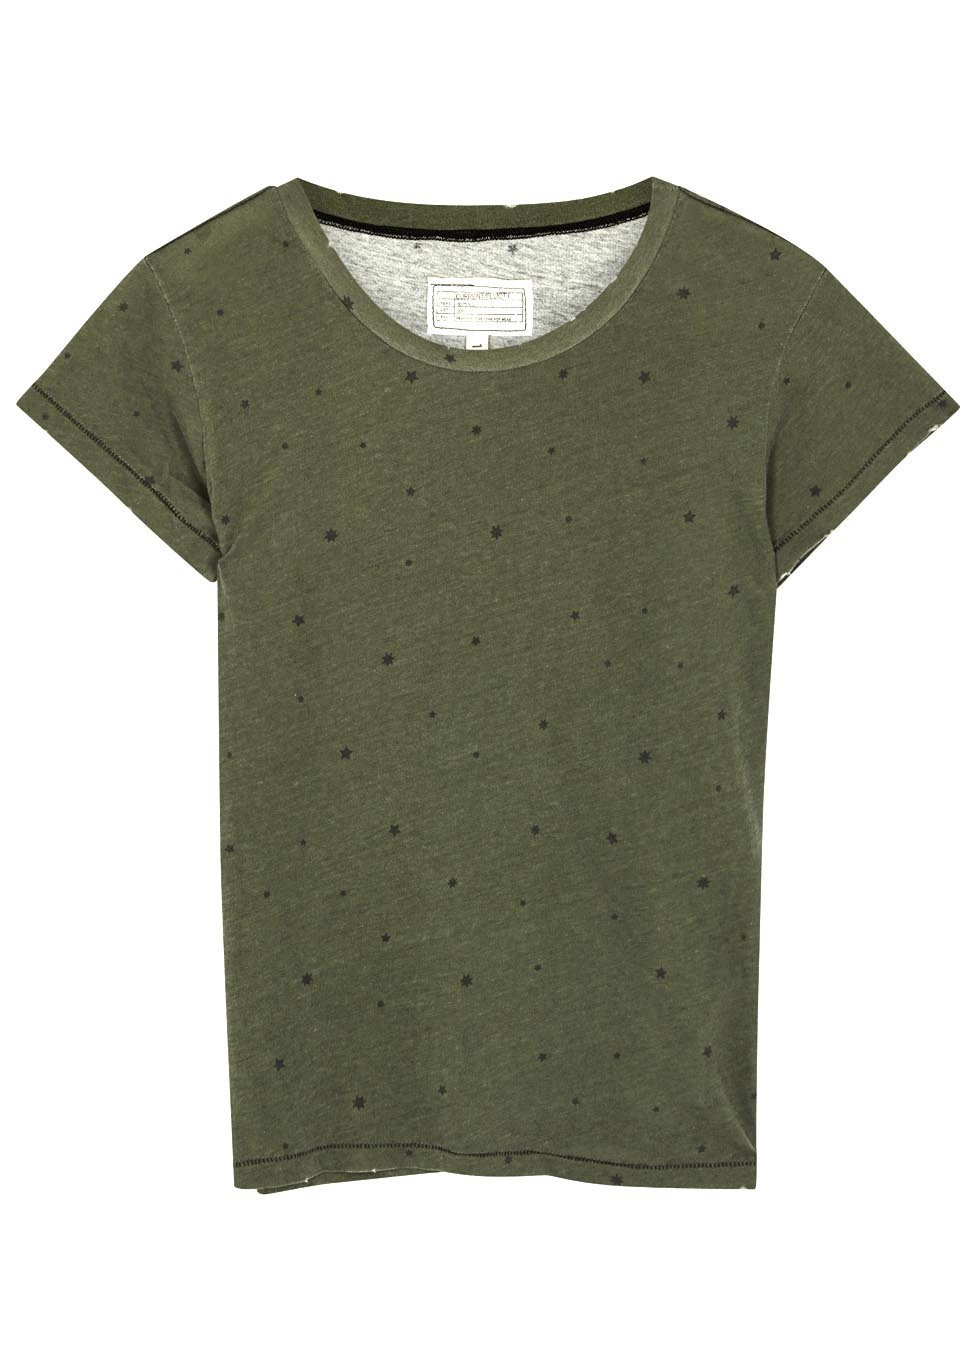 Army Green Star Printed Cotton T Shirt - neckline: round neck; pattern: plain; style: t-shirt; predominant colour: dark green; occasions: casual; length: standard; fibres: cotton - 100%; fit: body skimming; sleeve length: short sleeve; sleeve style: standard; pattern type: fabric; texture group: jersey - stretchy/drapey; season: s/s 2016